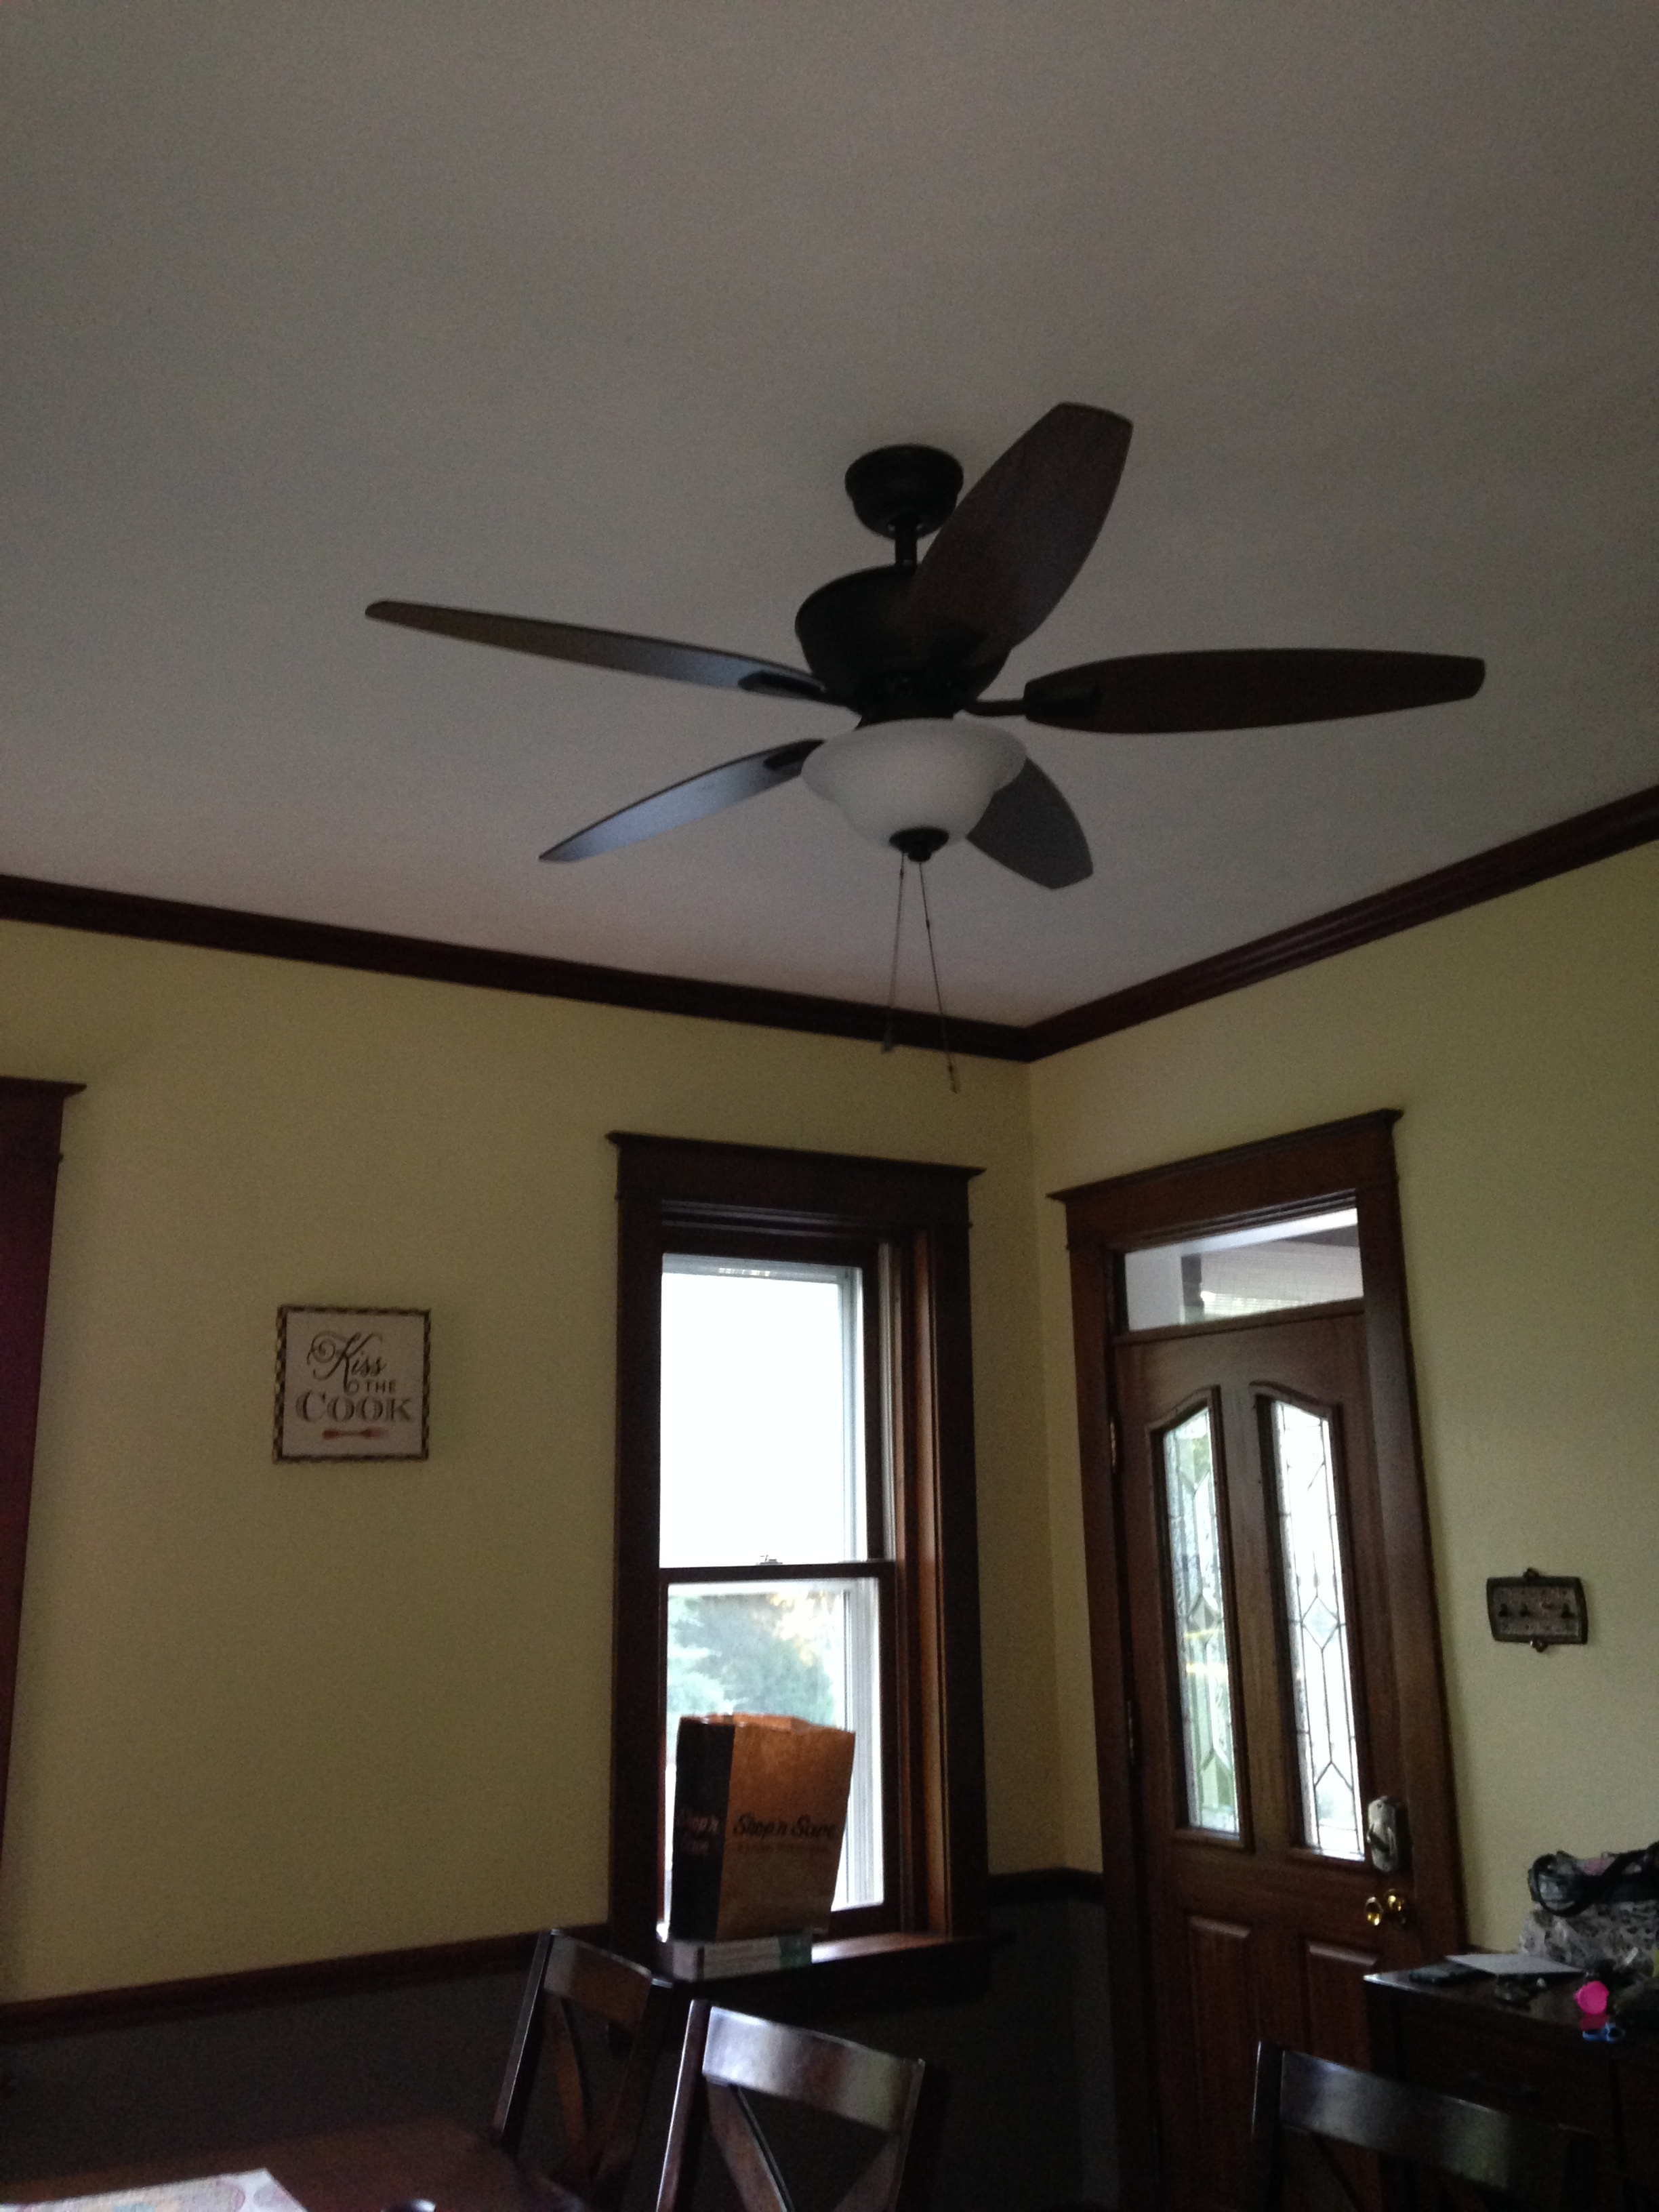 Too many ceiling fans We are your AirBnB hosts forum